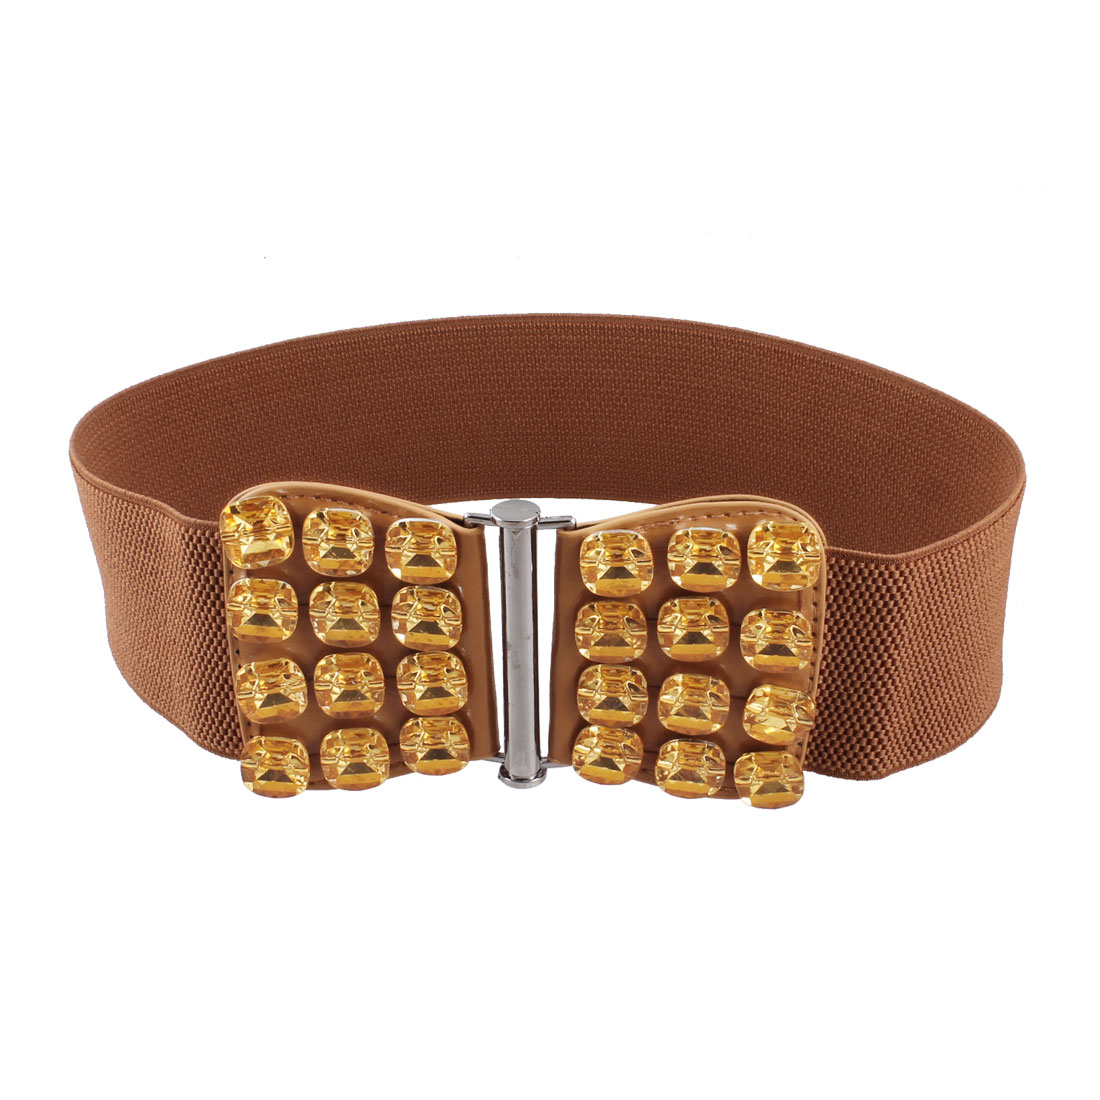 Interlocking Buckle Crystal Detail Stretchy Waist Belt Waistband Brown for Woman